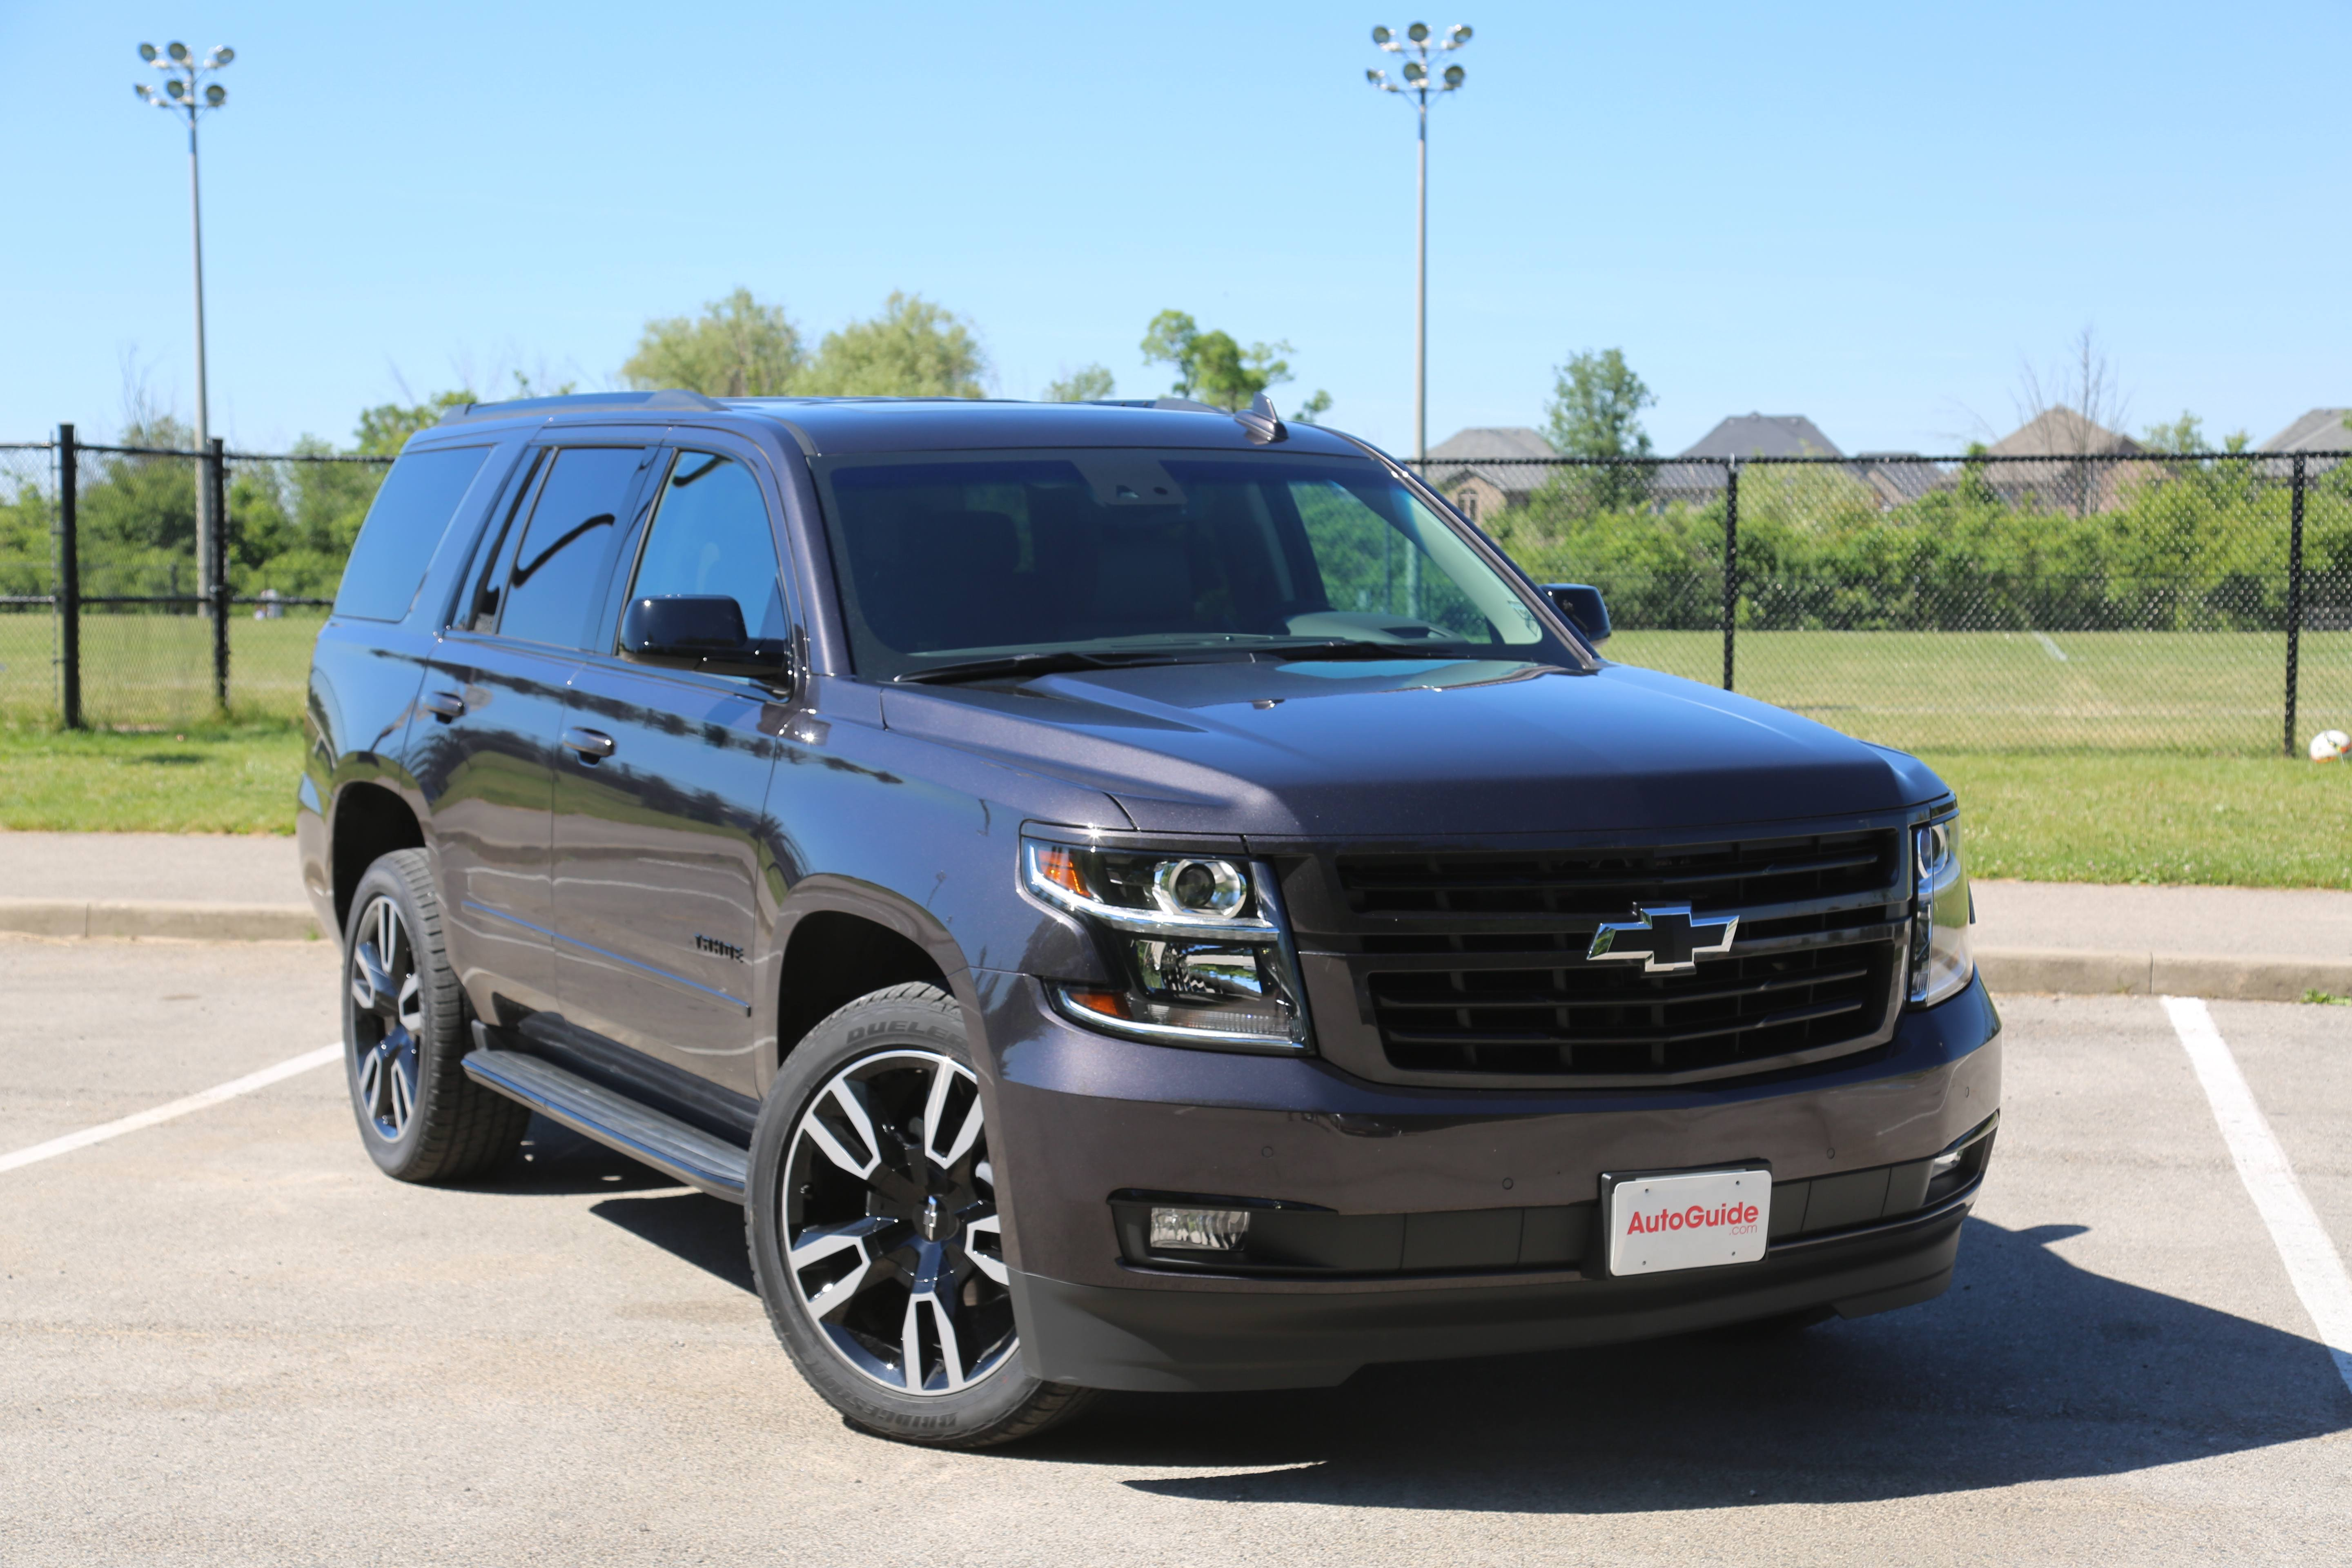 2018 Chevrolet Tahoe RST Review: The Only Trim That Really ...